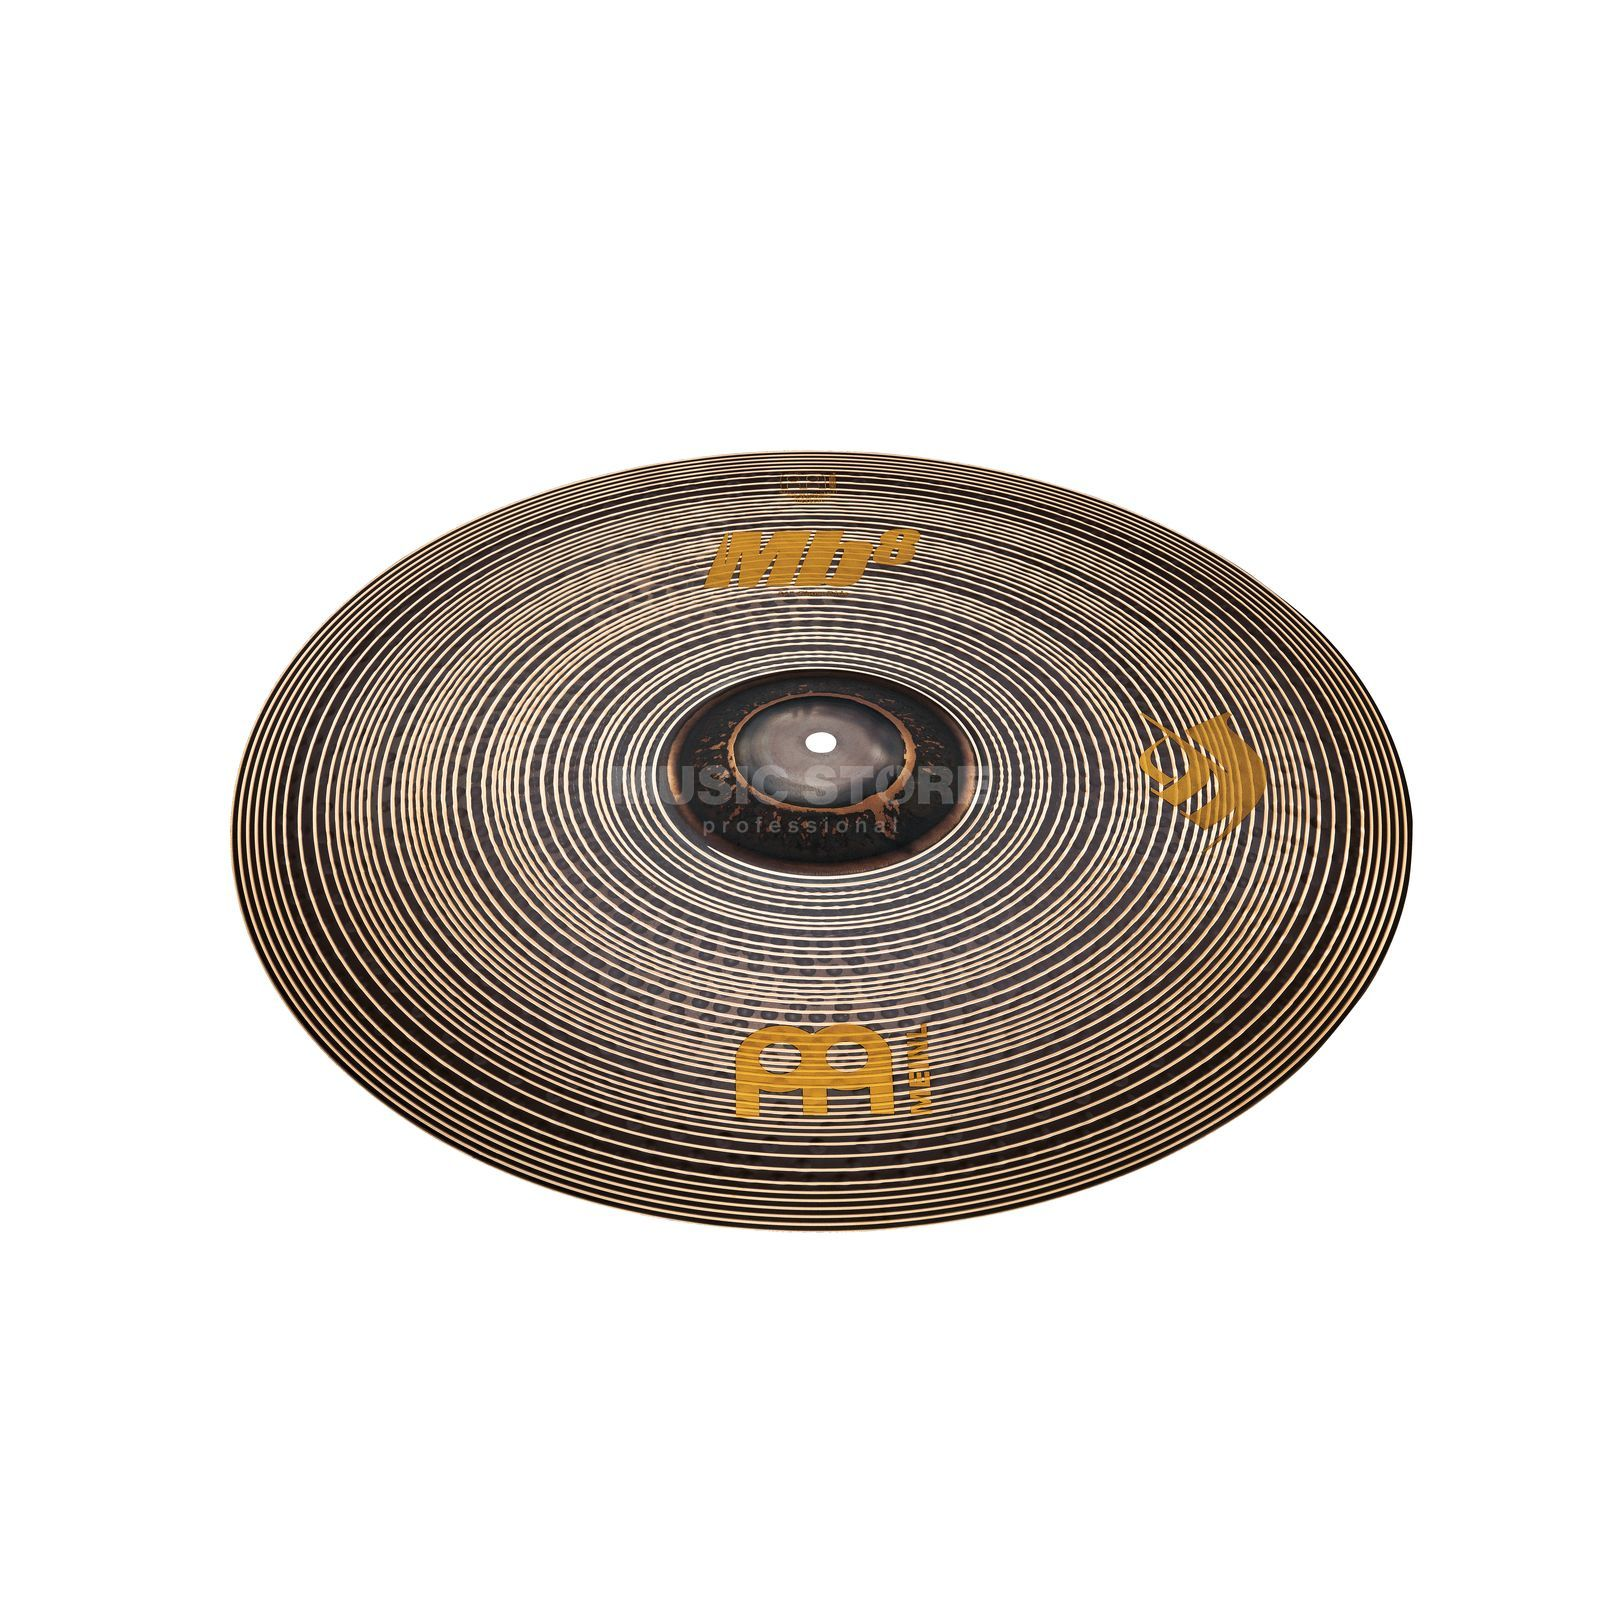 "Meinl MB8 Ghost Ride 21"", MB8-21GR Produktbillede"